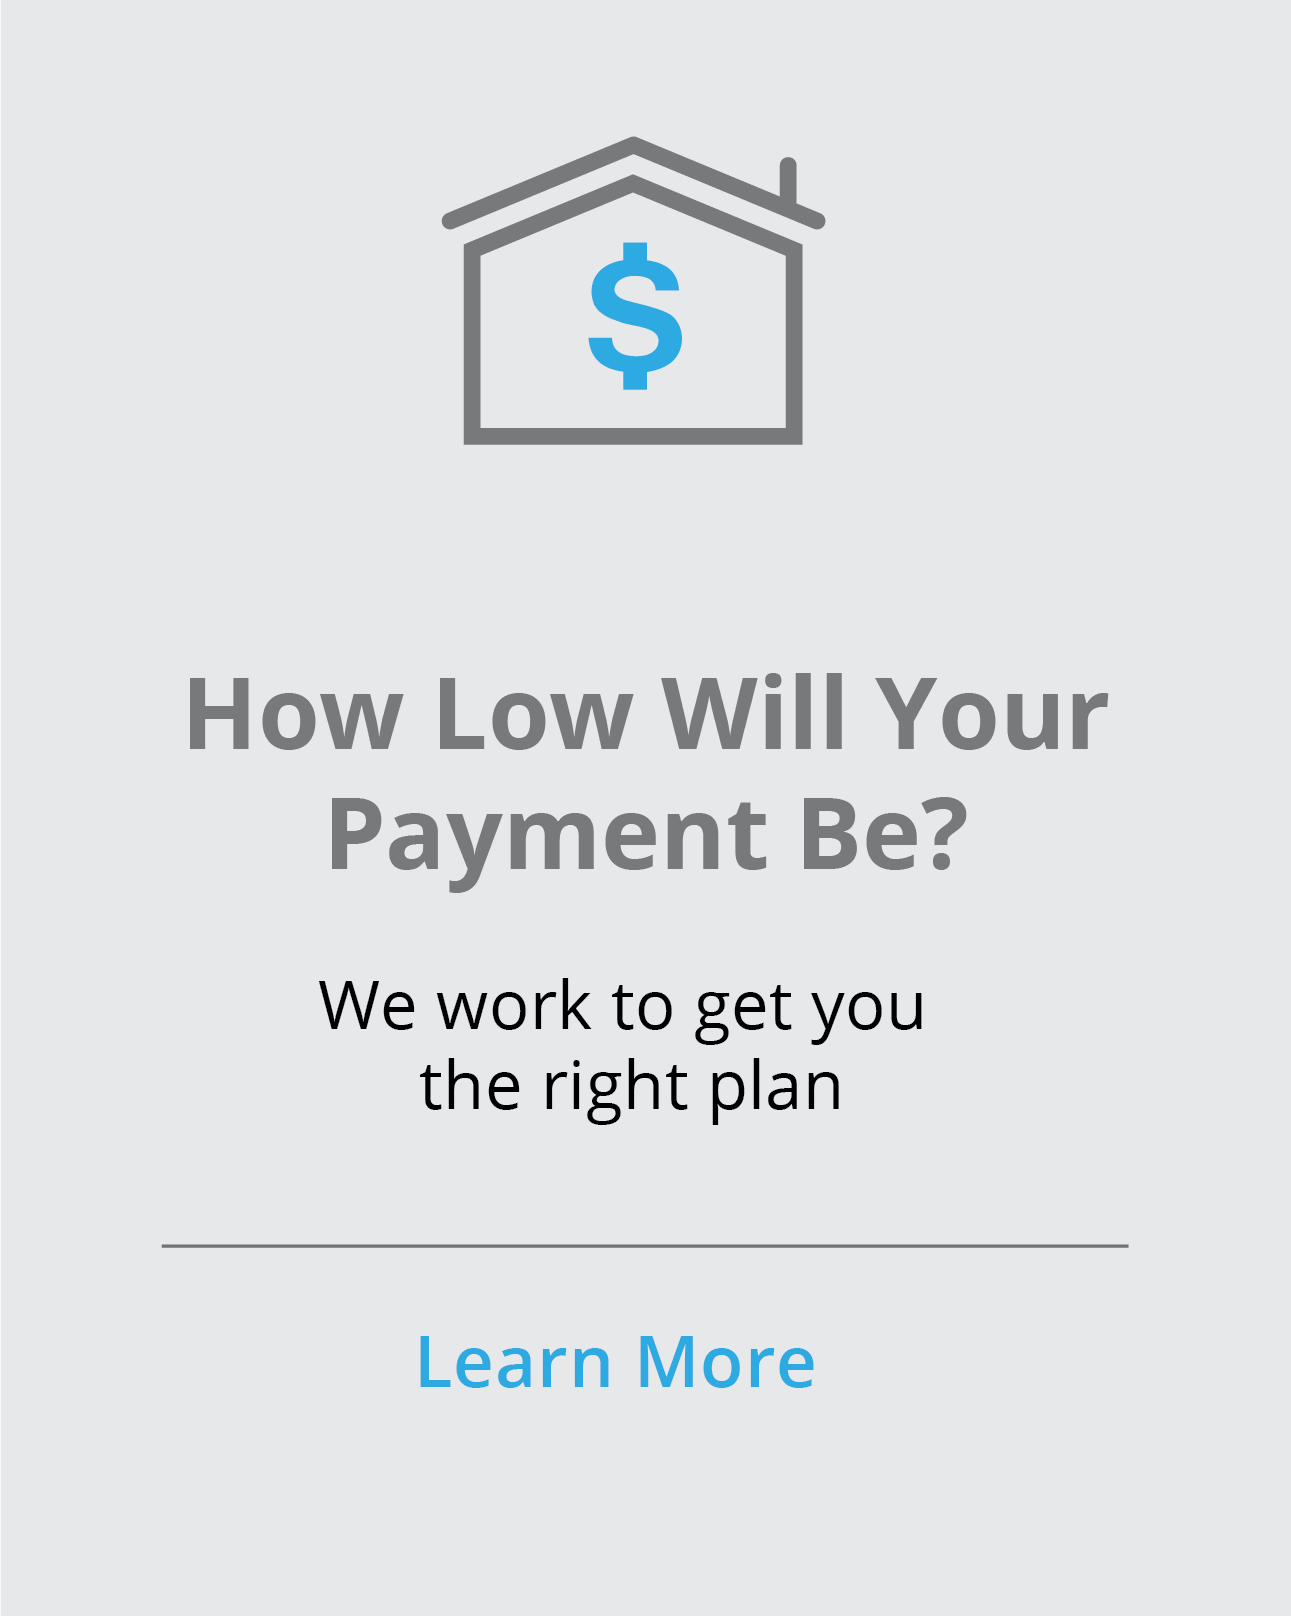 How low will your payment be?